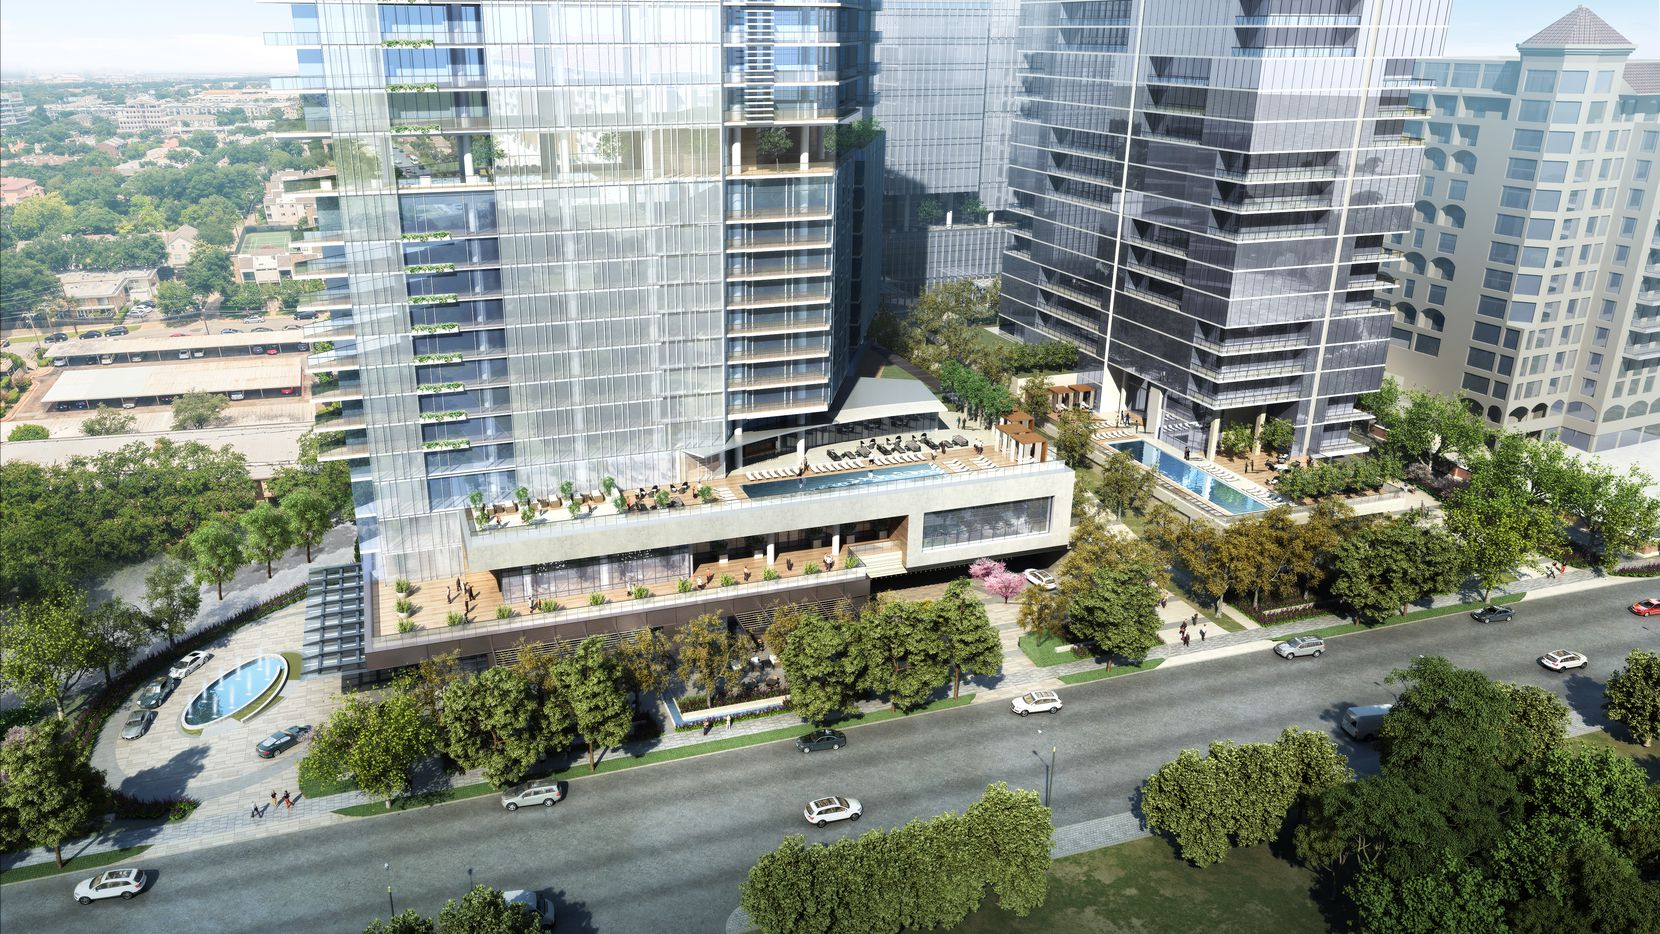 Developer Prescott Realty Group plans to build three high-rises on the site of the old Republic Insurance buildings on Turtle Creek.